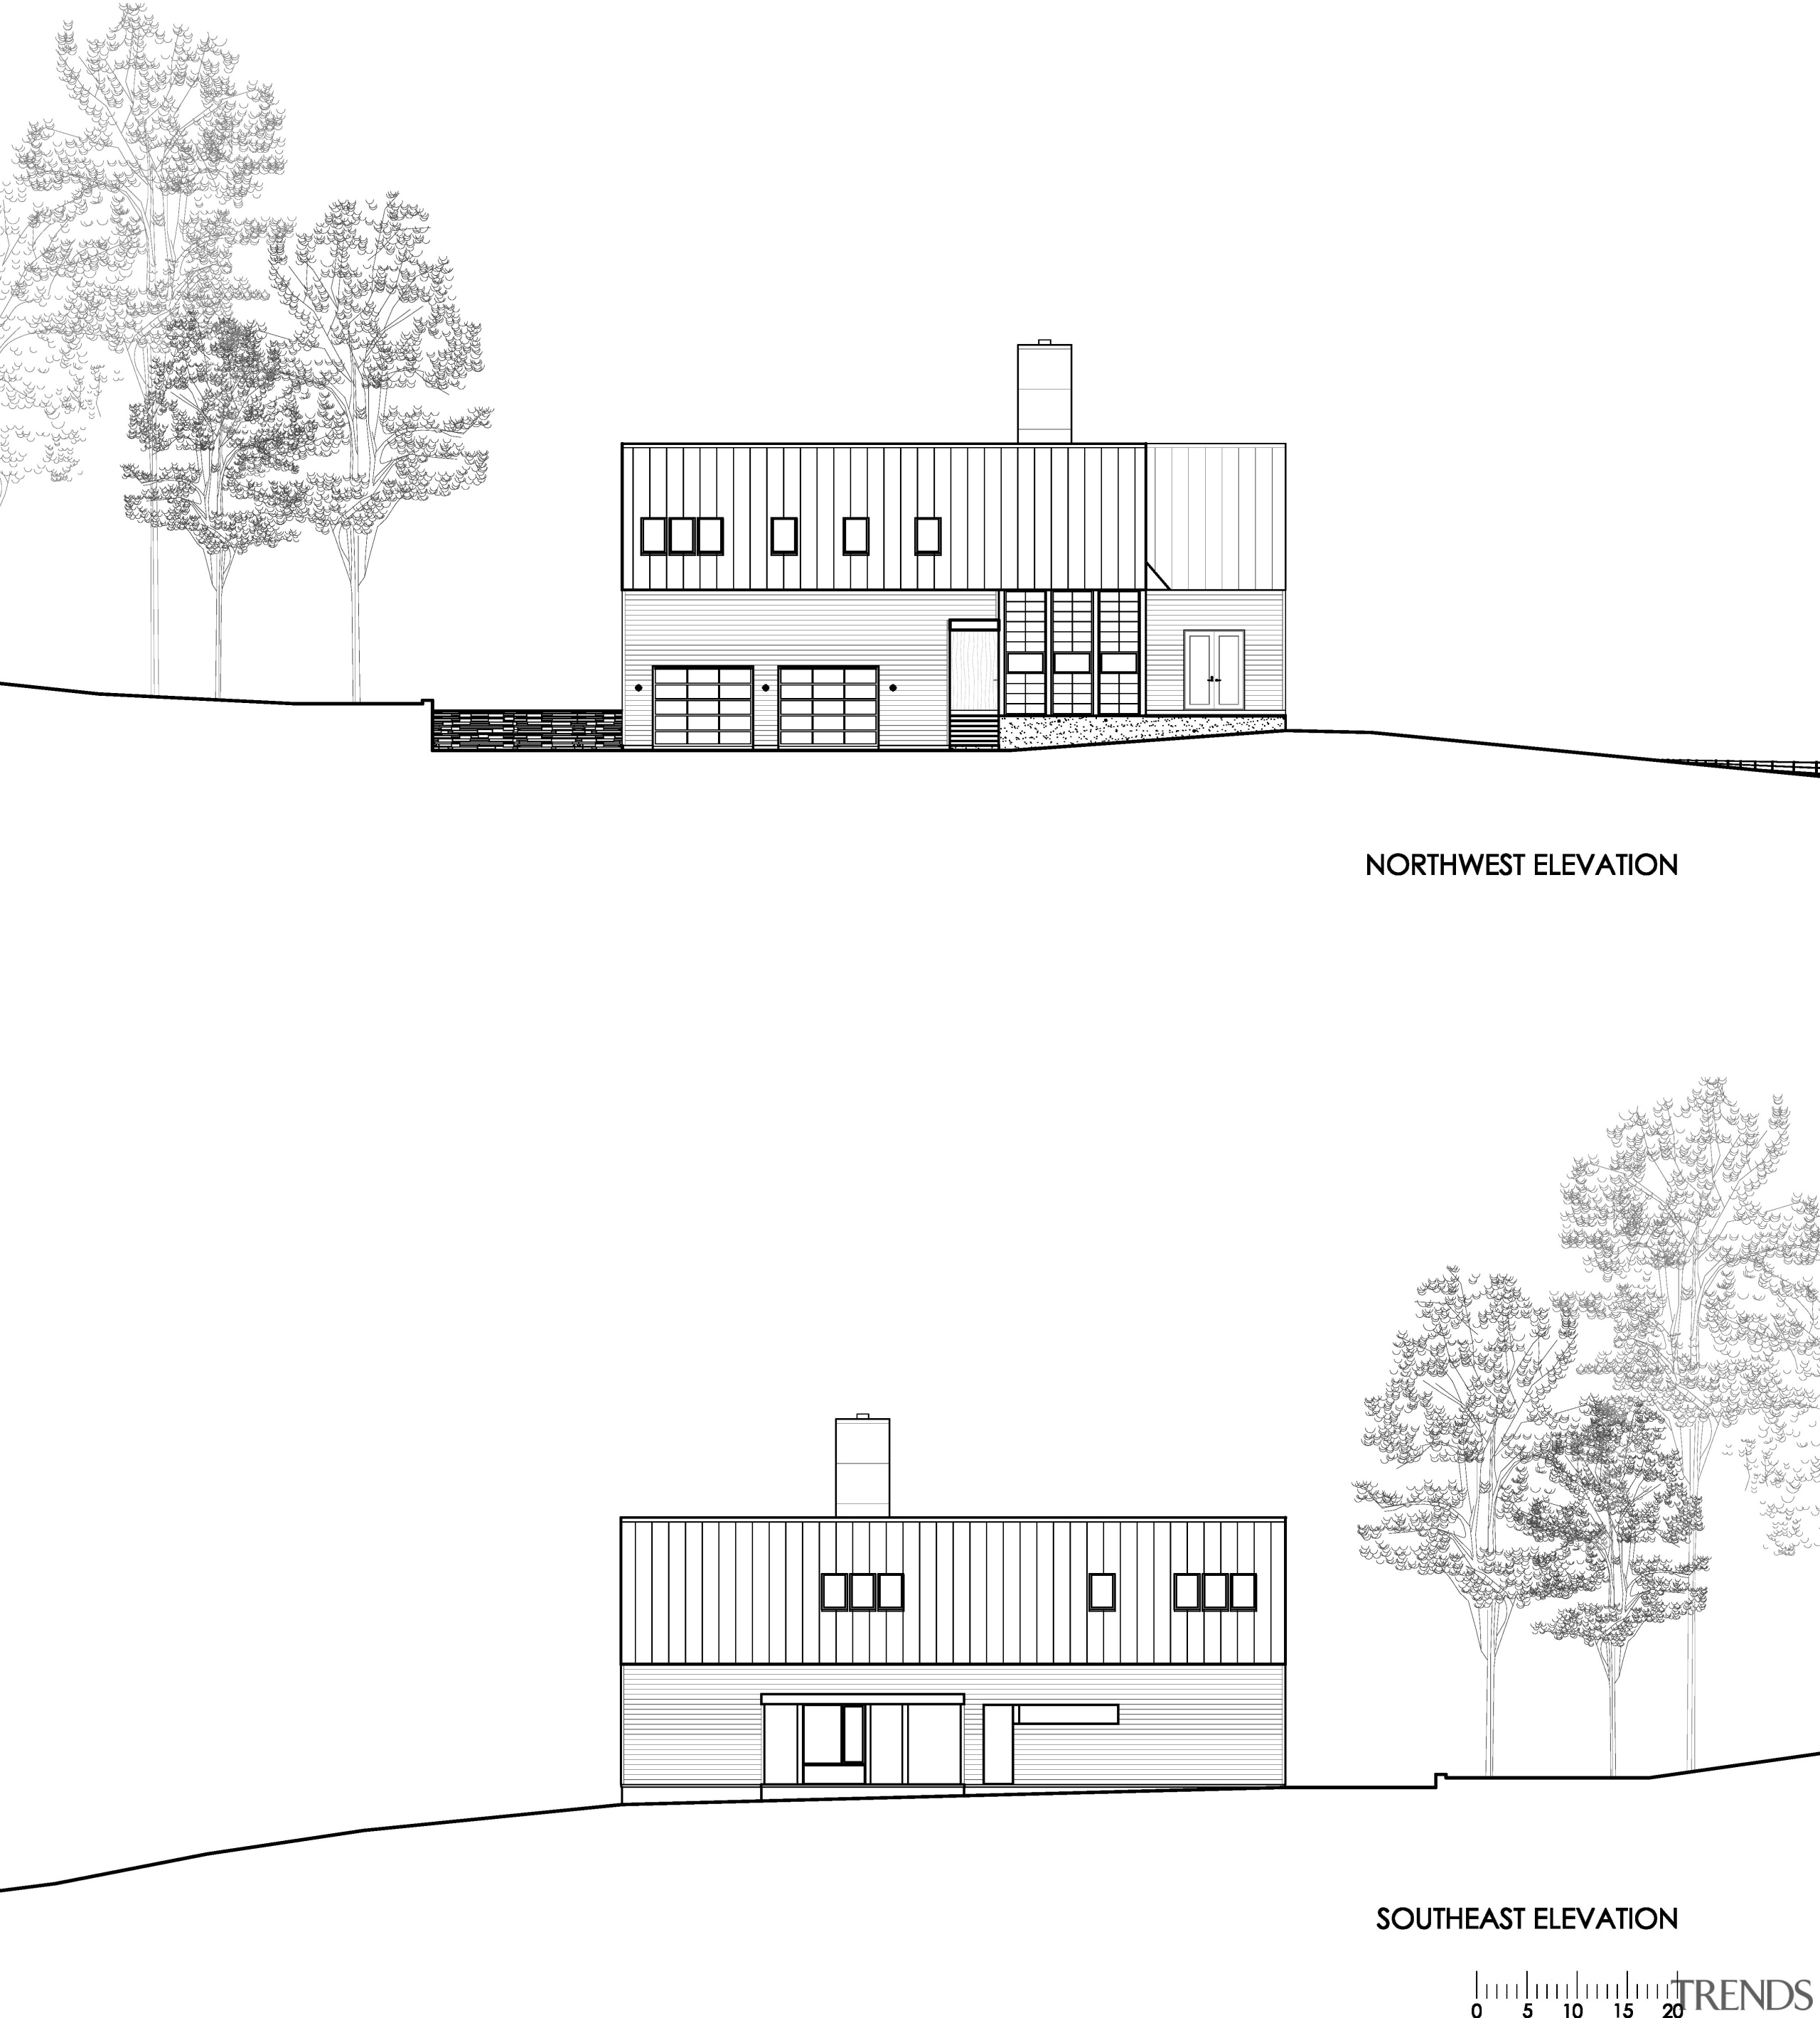 Modern country home plan by Robert M Gurney angle, architecture, area, black and white, design, diagram, drawing, elevation, floor plan, font, house, line, monochrome, plan, product design, structure, text, white